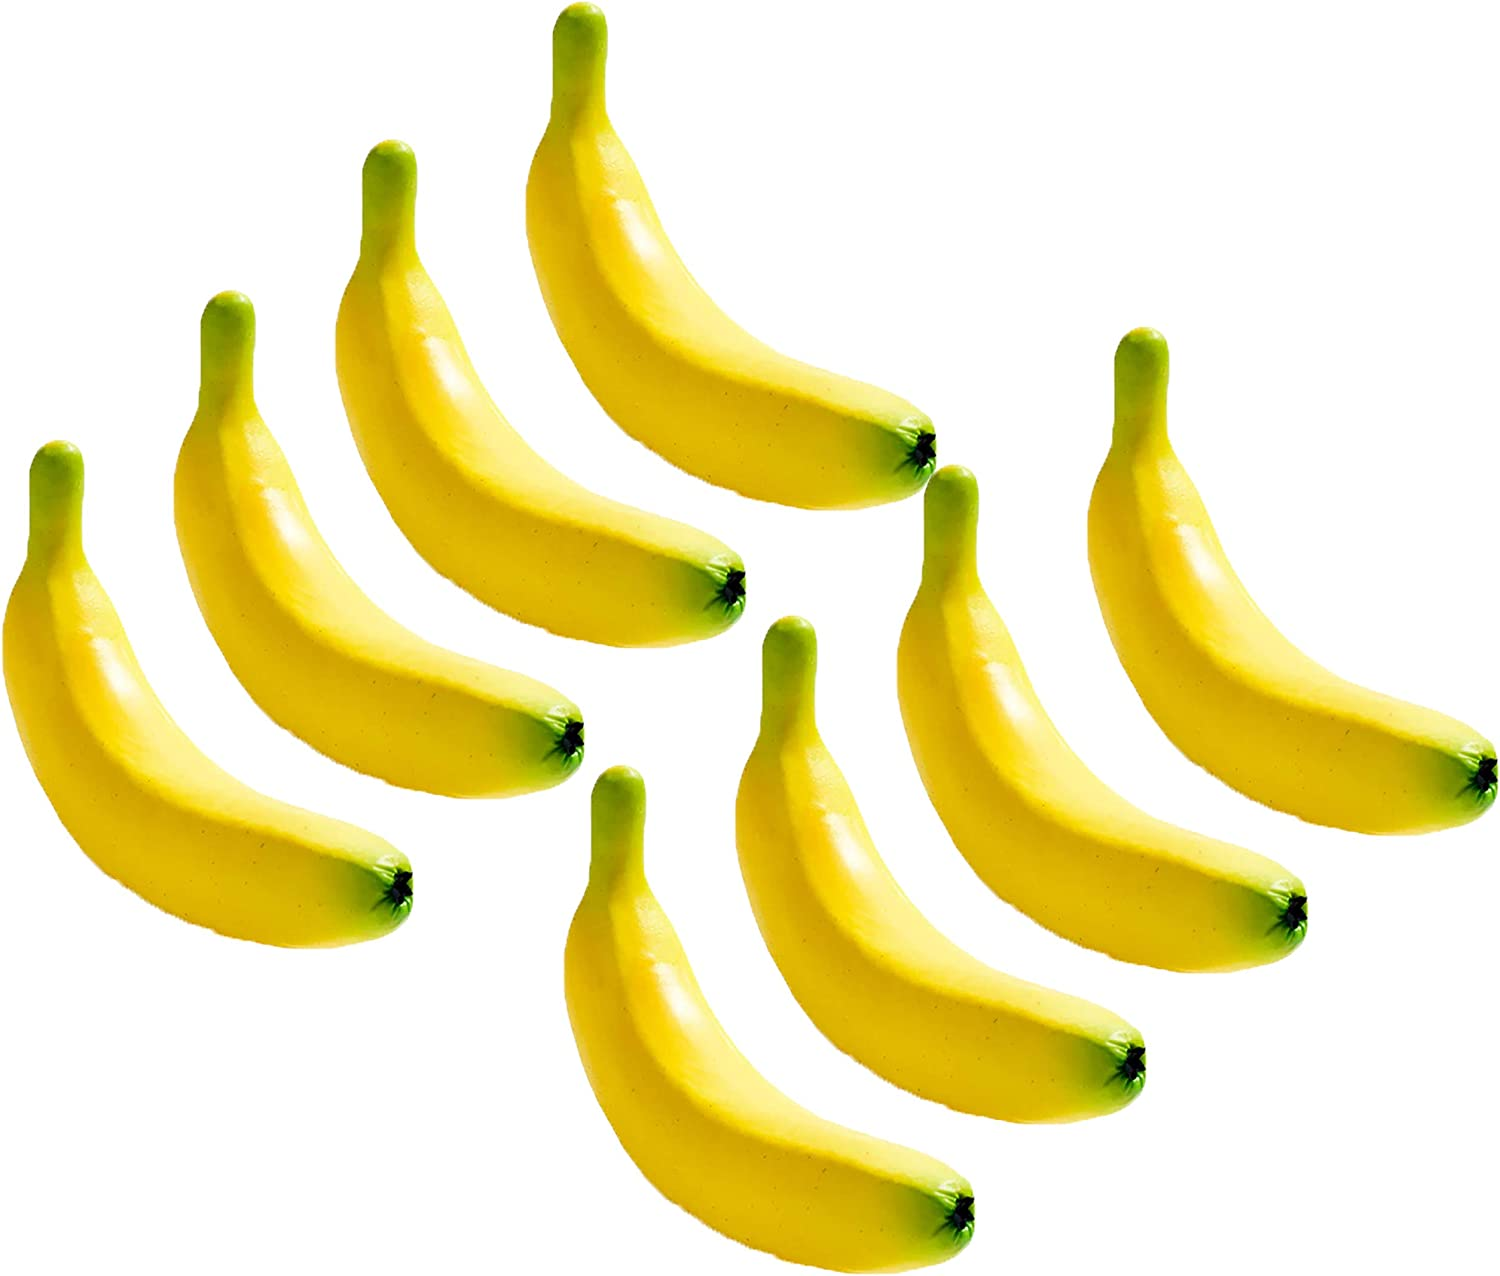 """Set of 8 Decorative Life Size Faux Bananas - Great for Decorating your Home, Creating a Store Display, and Photo Props - Realistically Colored and Sized Fruit - Measures 6.75"""" x 1.375""""(Bananas)"""